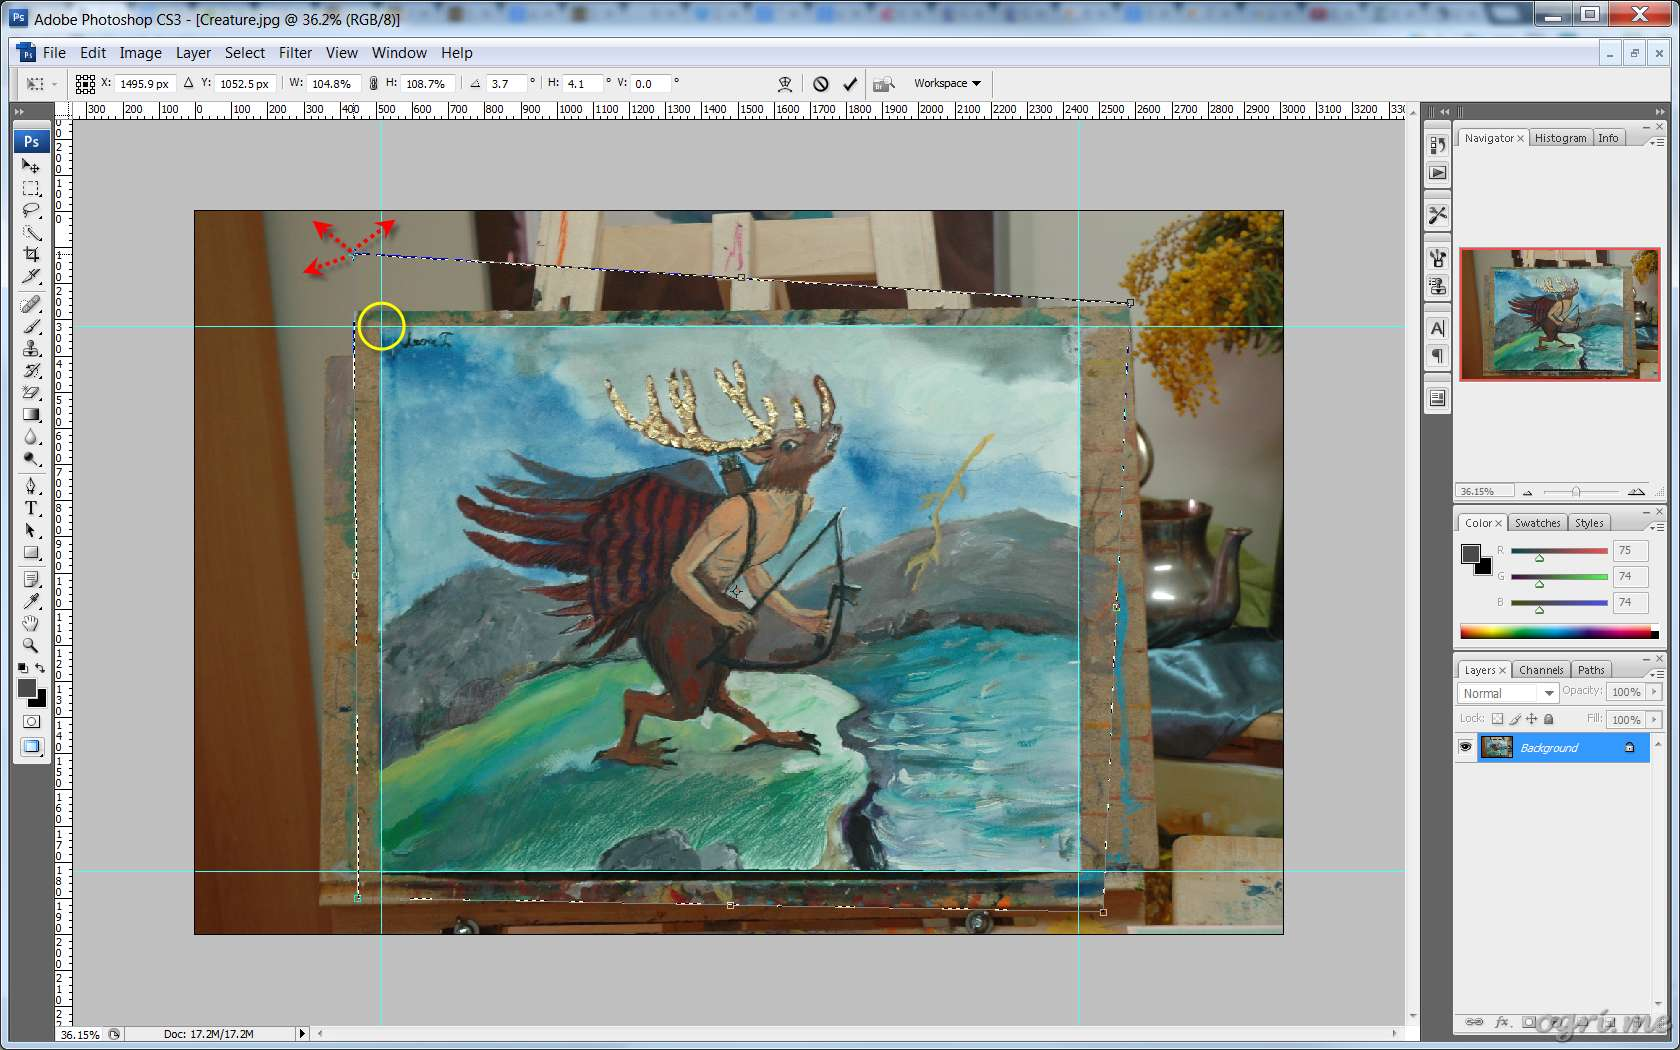 ogri.me | Photoshop: Processing photos of paintings for online gallery #05